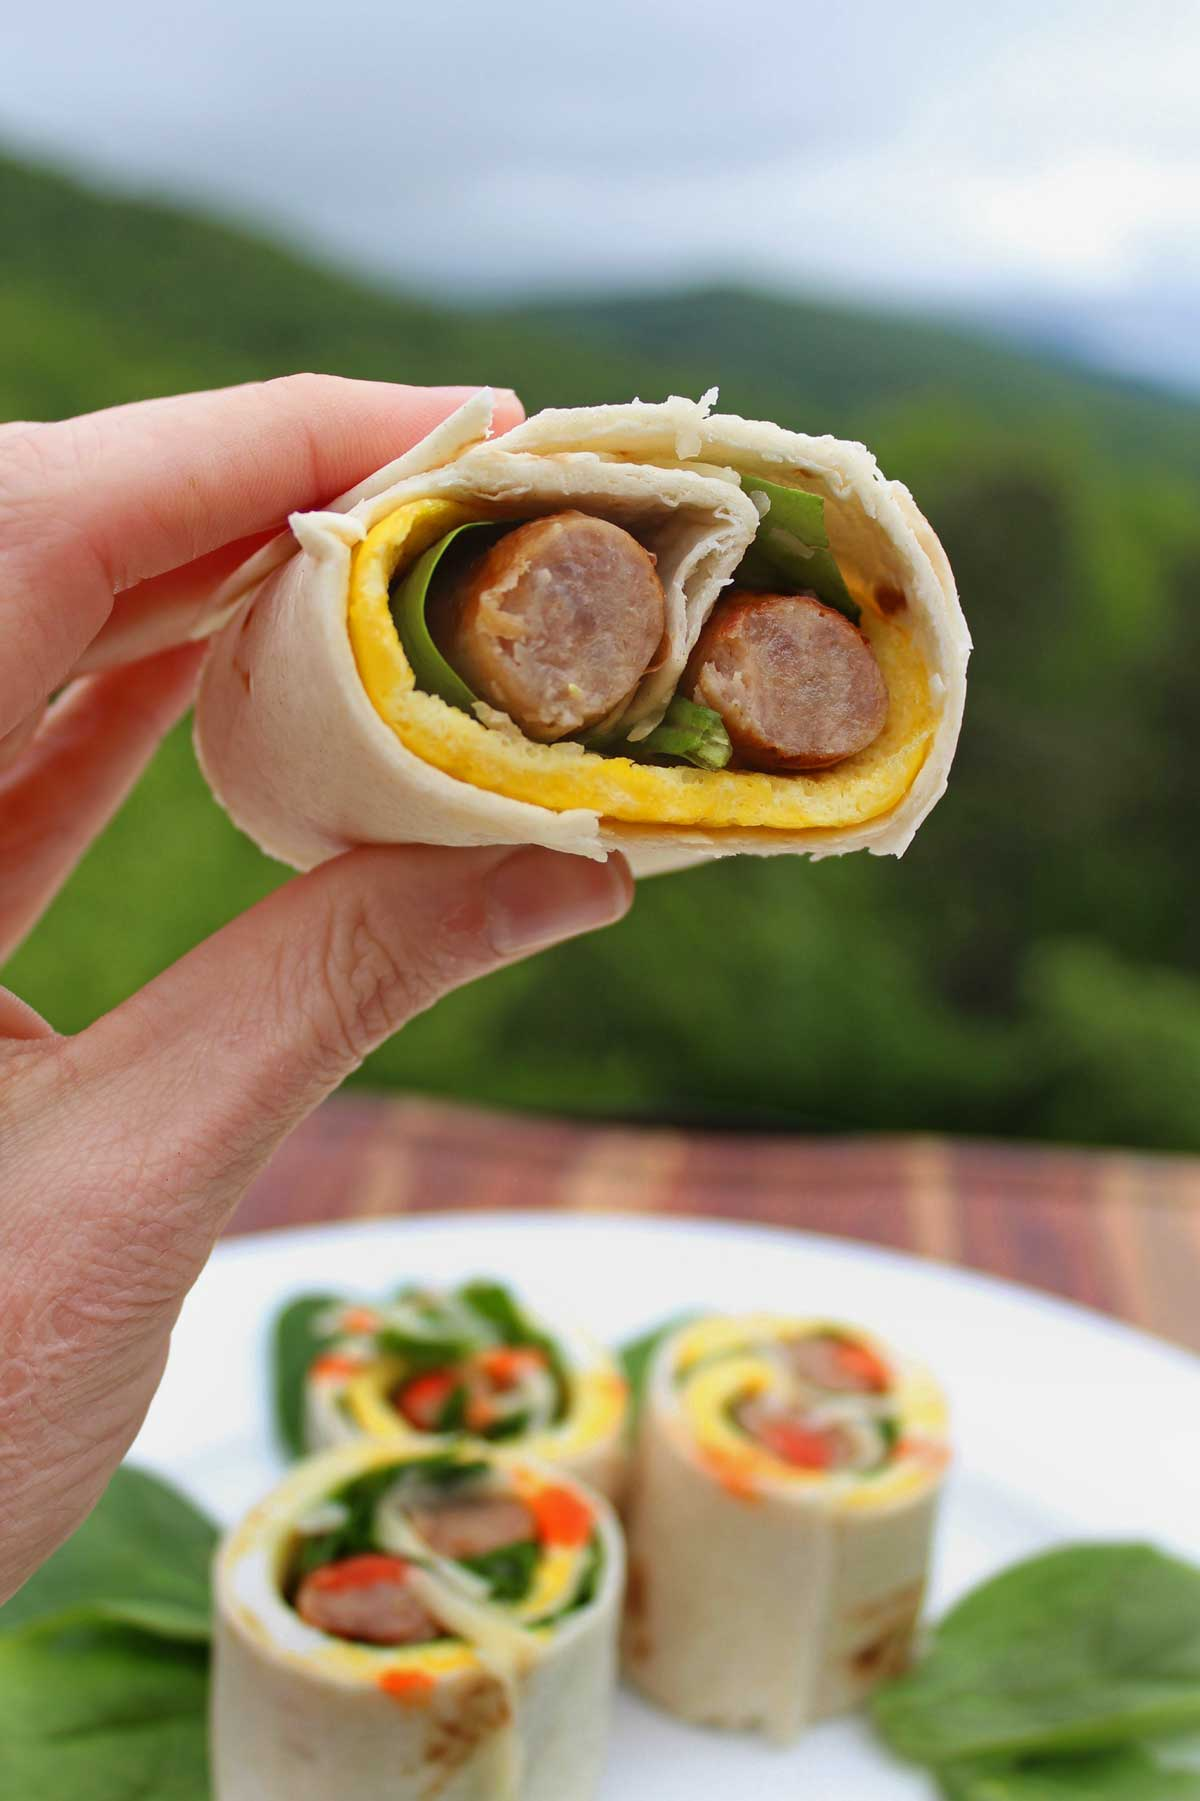 Need a quick breakfast on the run?. Breakfast roll-ups are filled with juicy breakfast sausage, eggs, cheese and spinach. Jumpstart your day with hot sauce!